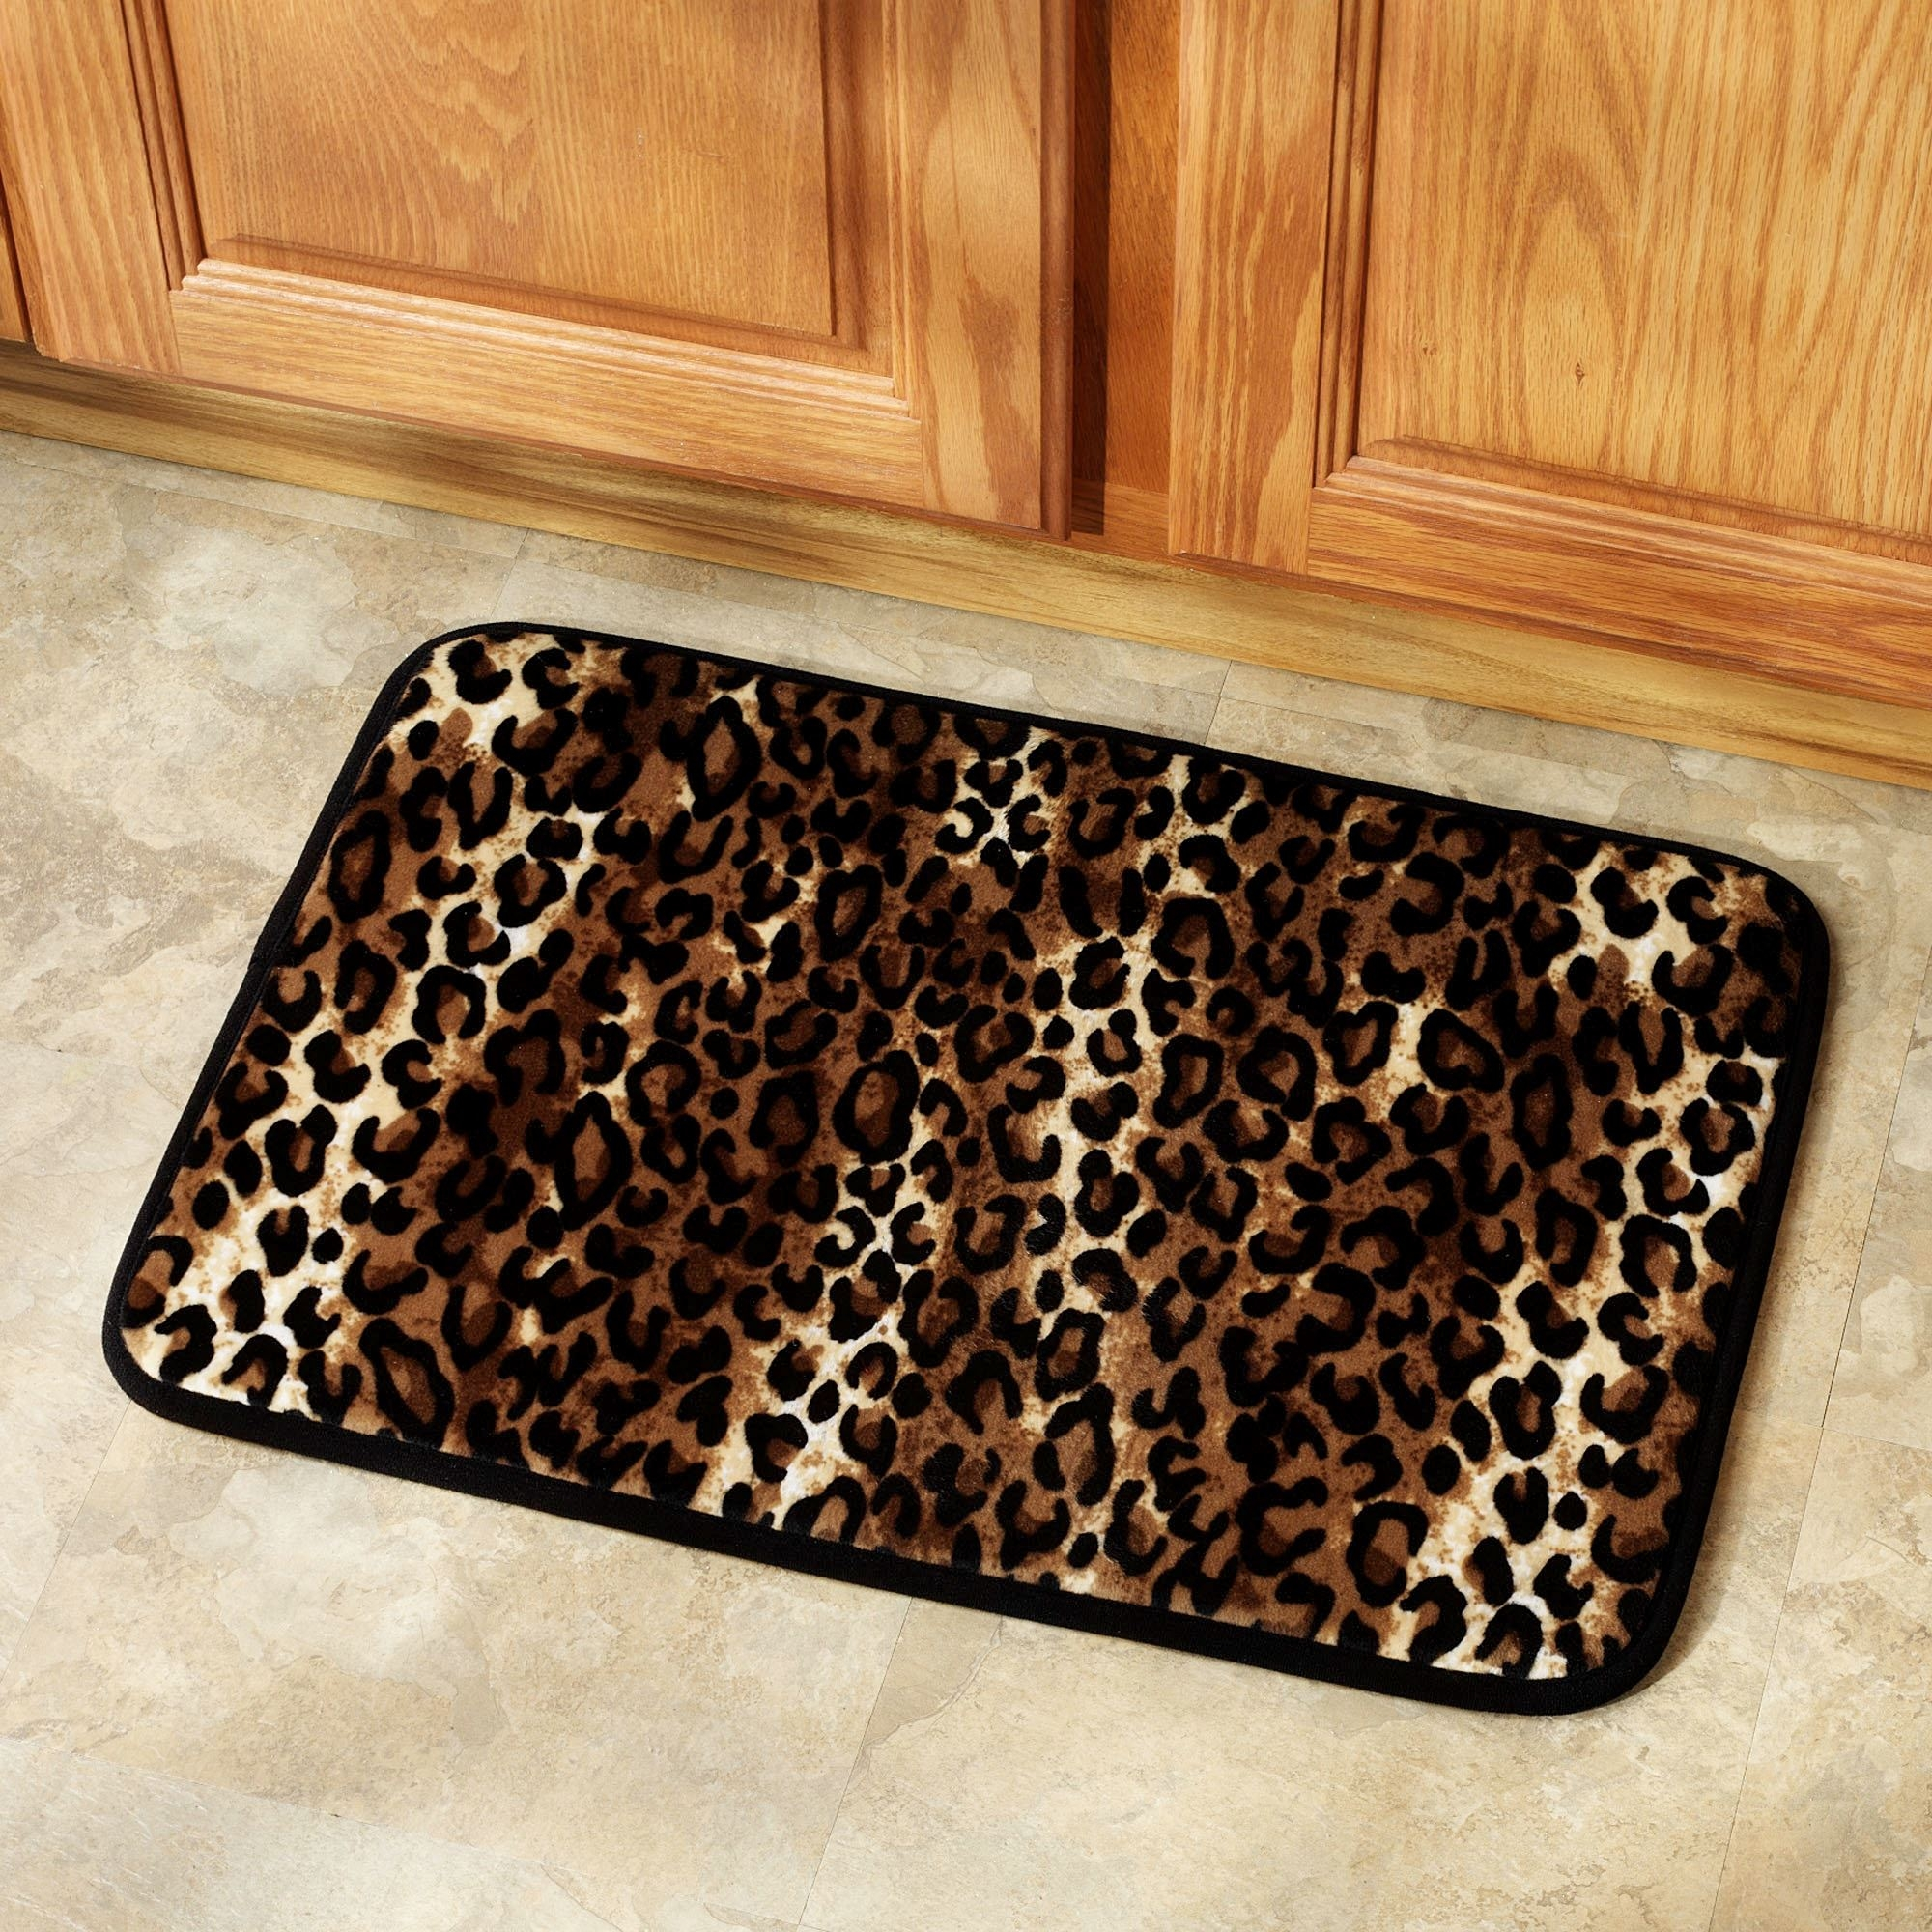 Animal Print Bathroom Mats